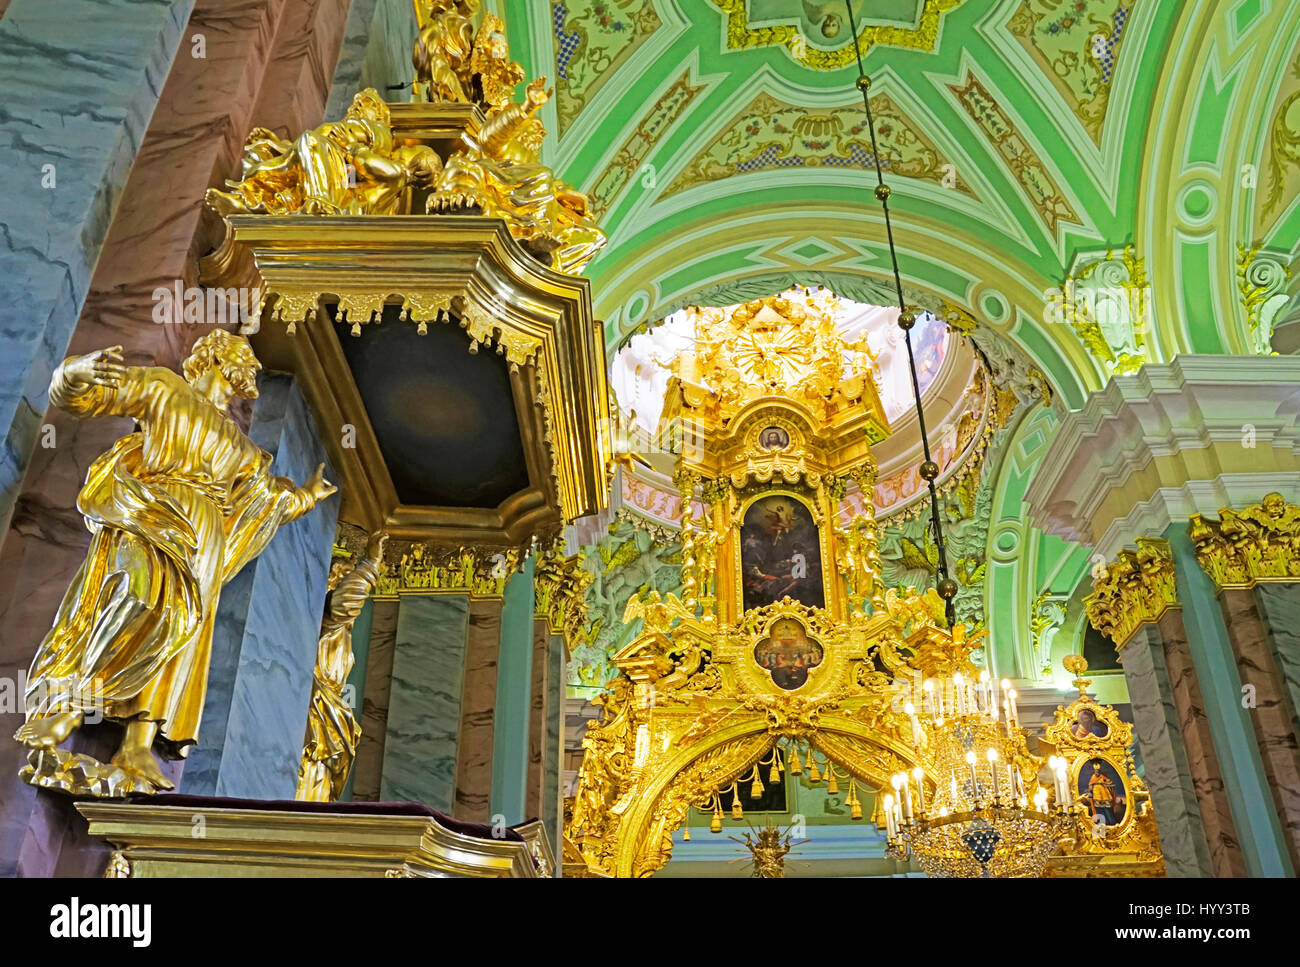 Peter and Paul Fortress church interior in St. Petersburg, Russia. - Stock Image